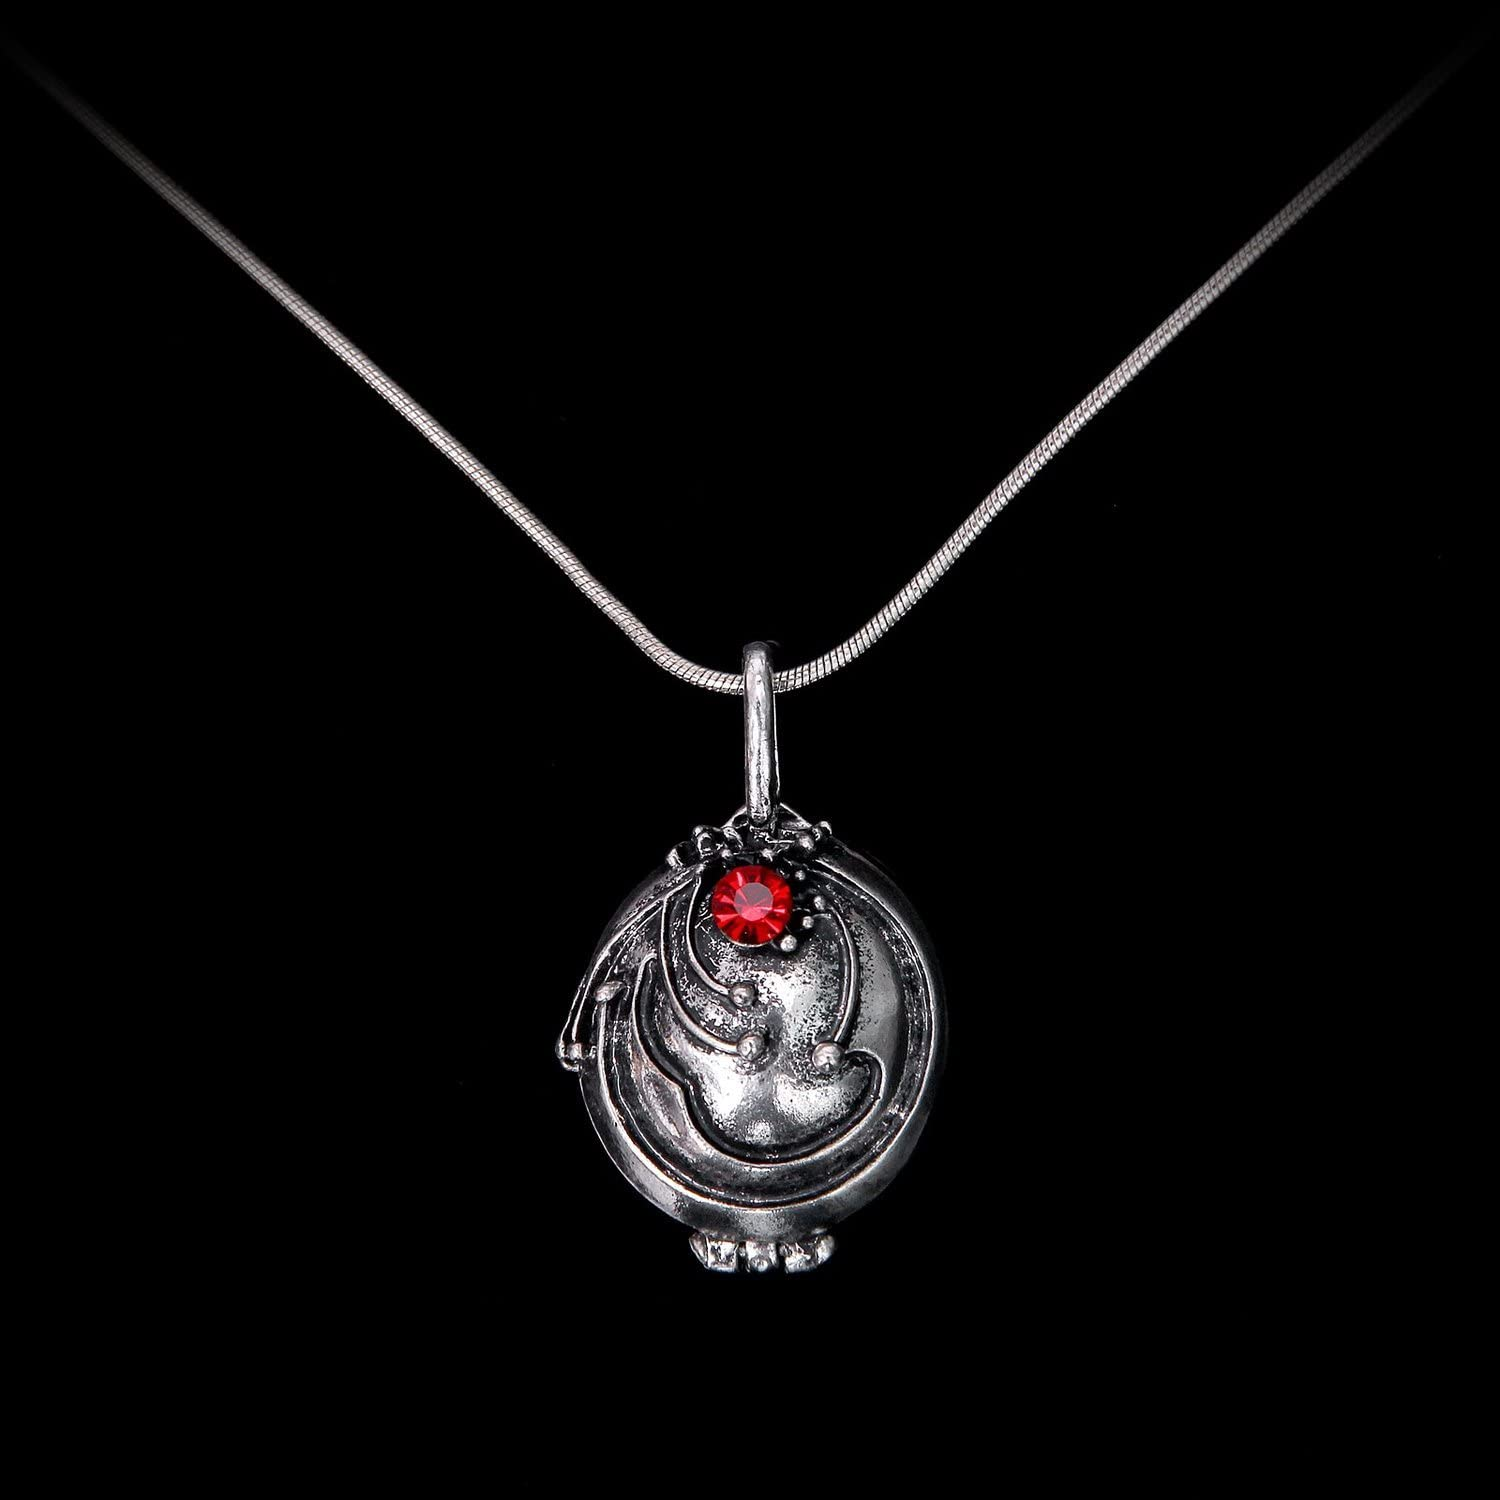 New Vampire Diaries Necklace Choker Necklace Snake Chain 22 Pendants and Stones